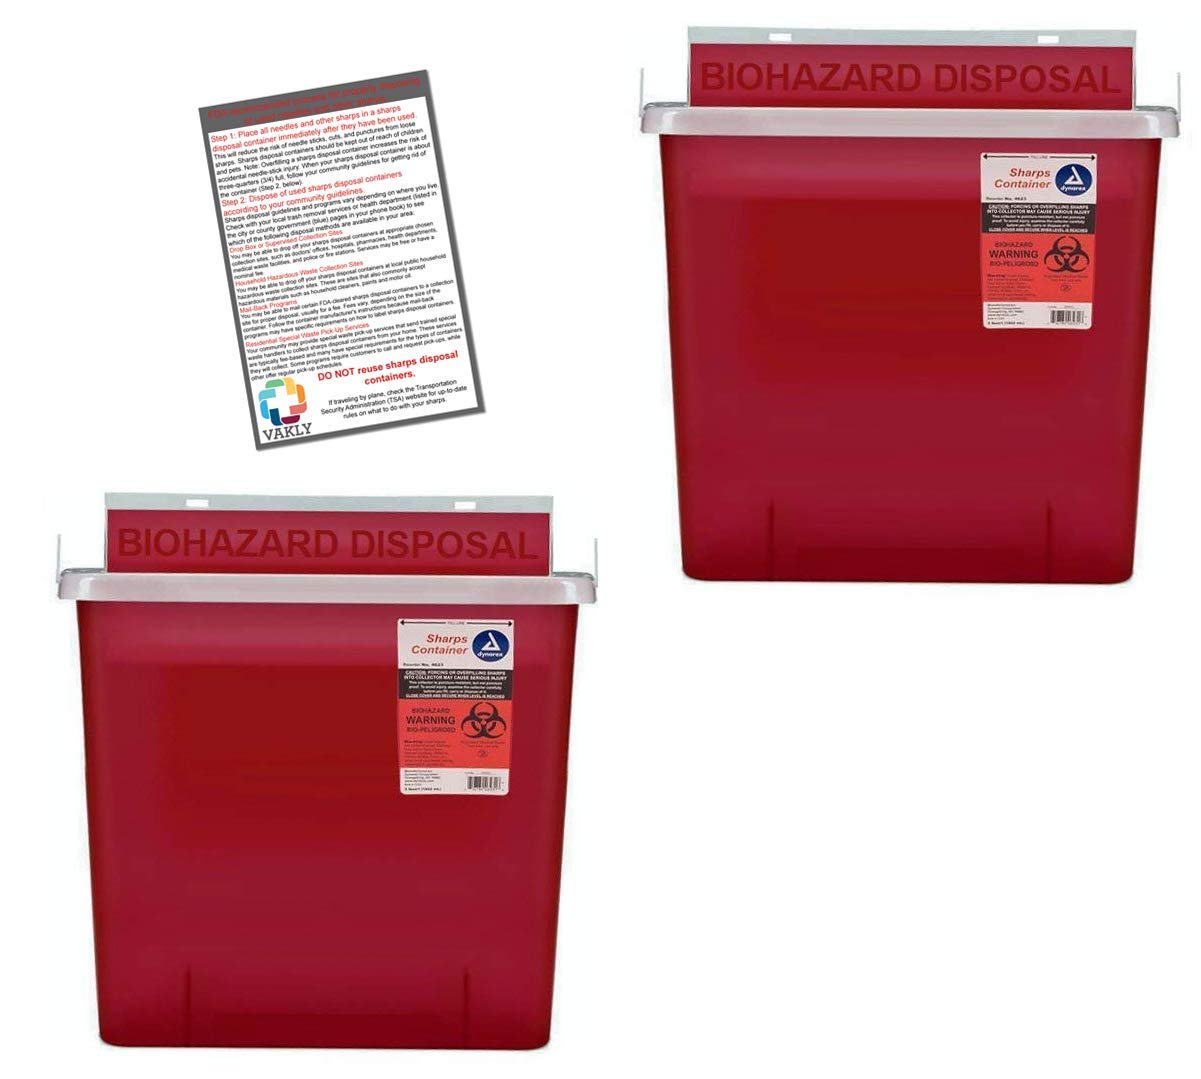 Sharps Container 5 Quart with Mailbox Style Lid - Plus Vakly Biohazard Disposal Guide (2 Pack)